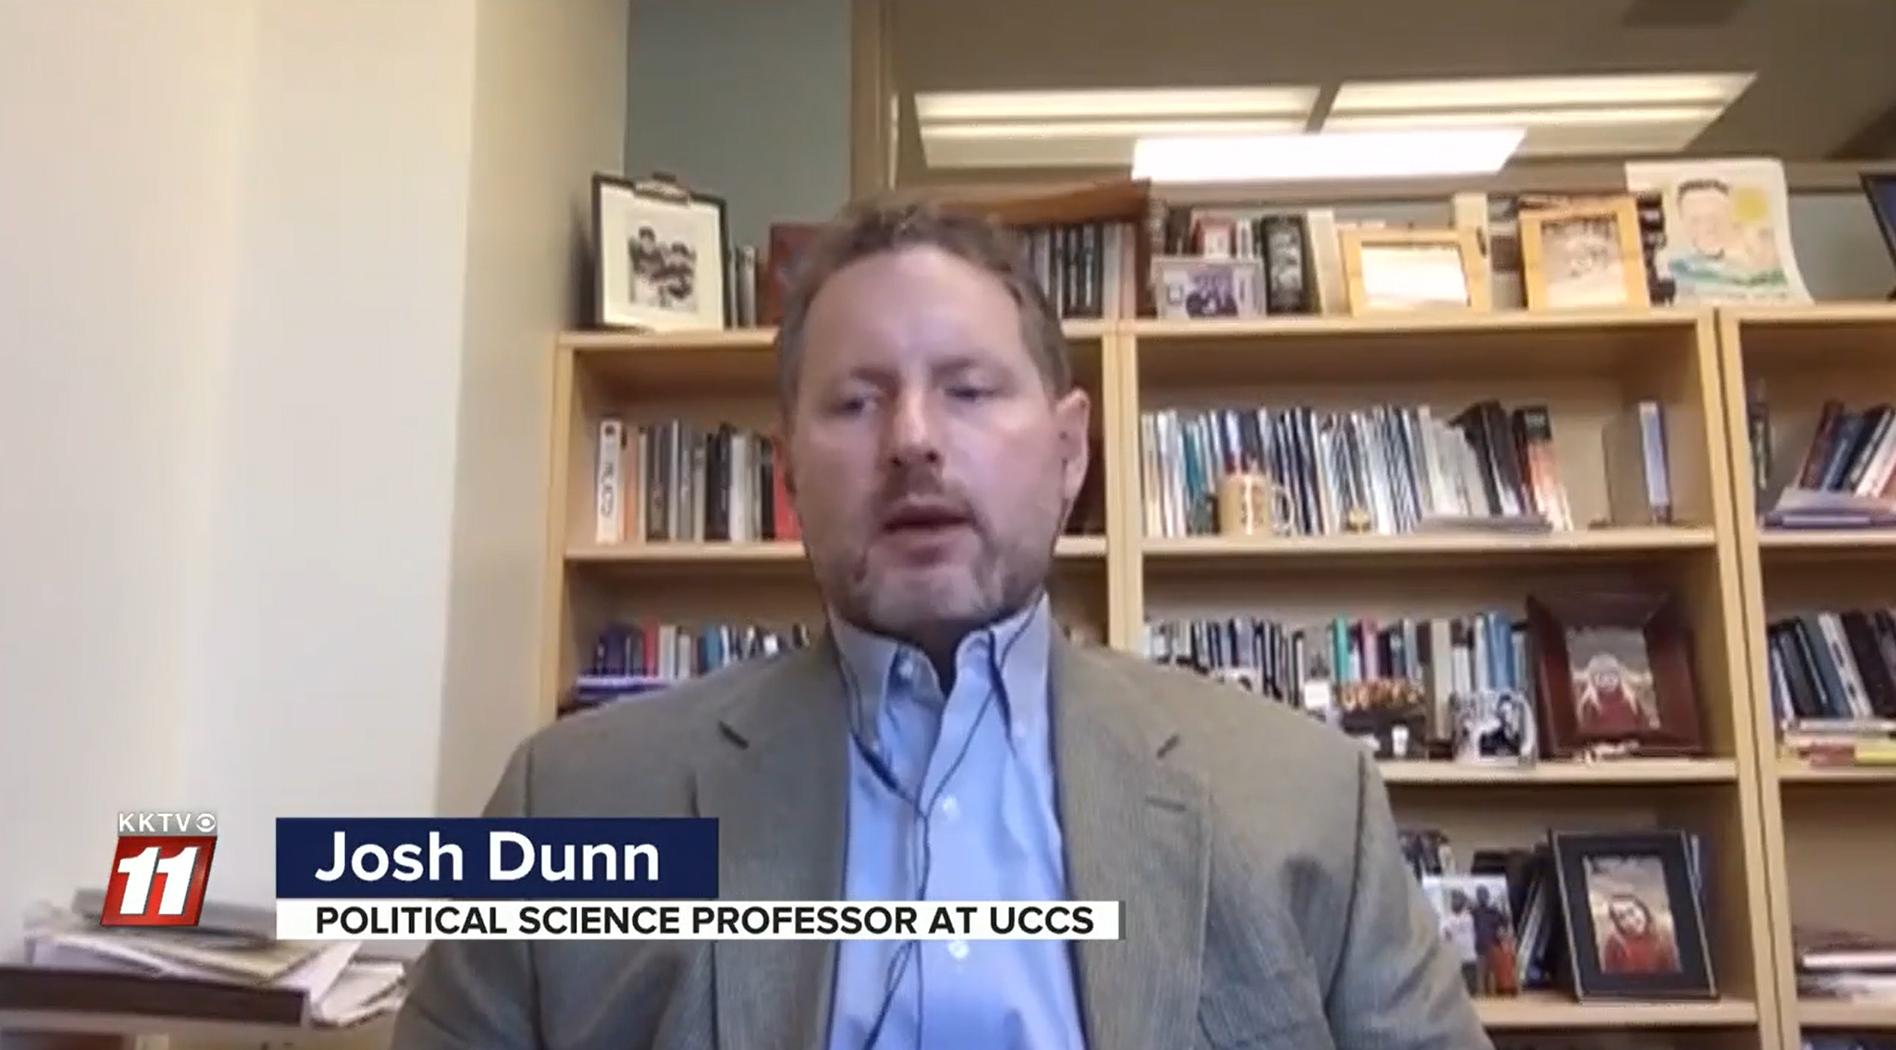 Screenshot of Josh Dunn being interviewed in his office by KKTV